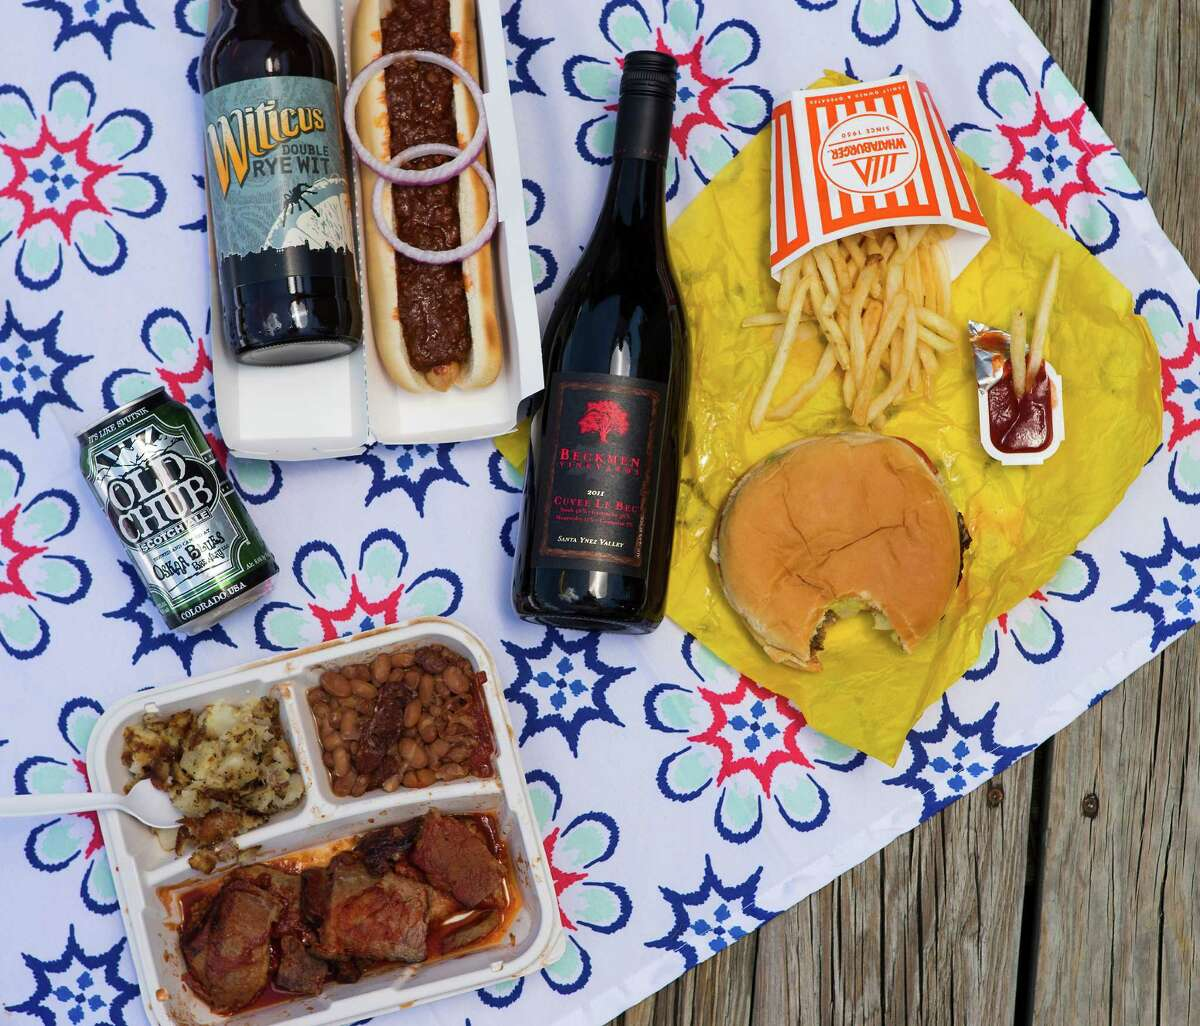 Pair your fast food with some classy wines and beers.